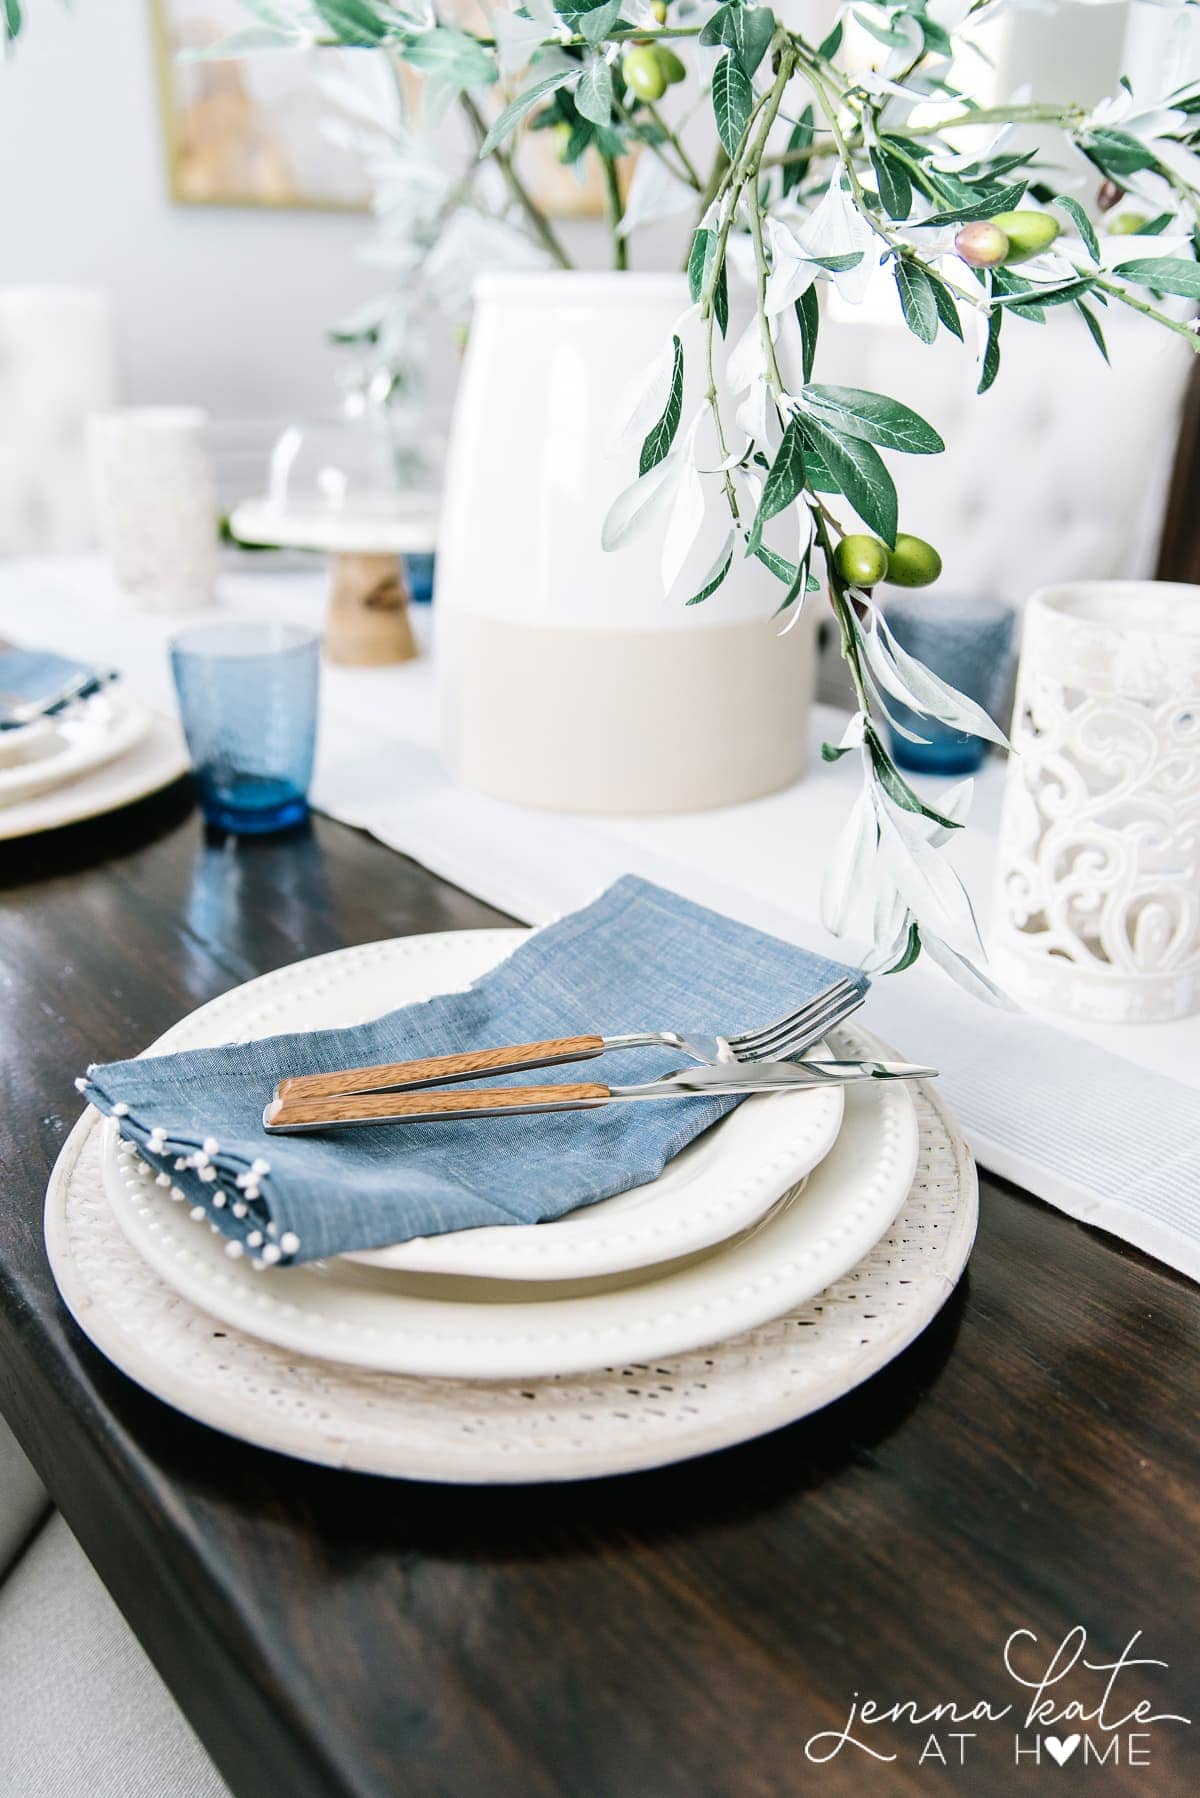 Spring table decor with natural wood -handled silverware and Spring branches in a vase